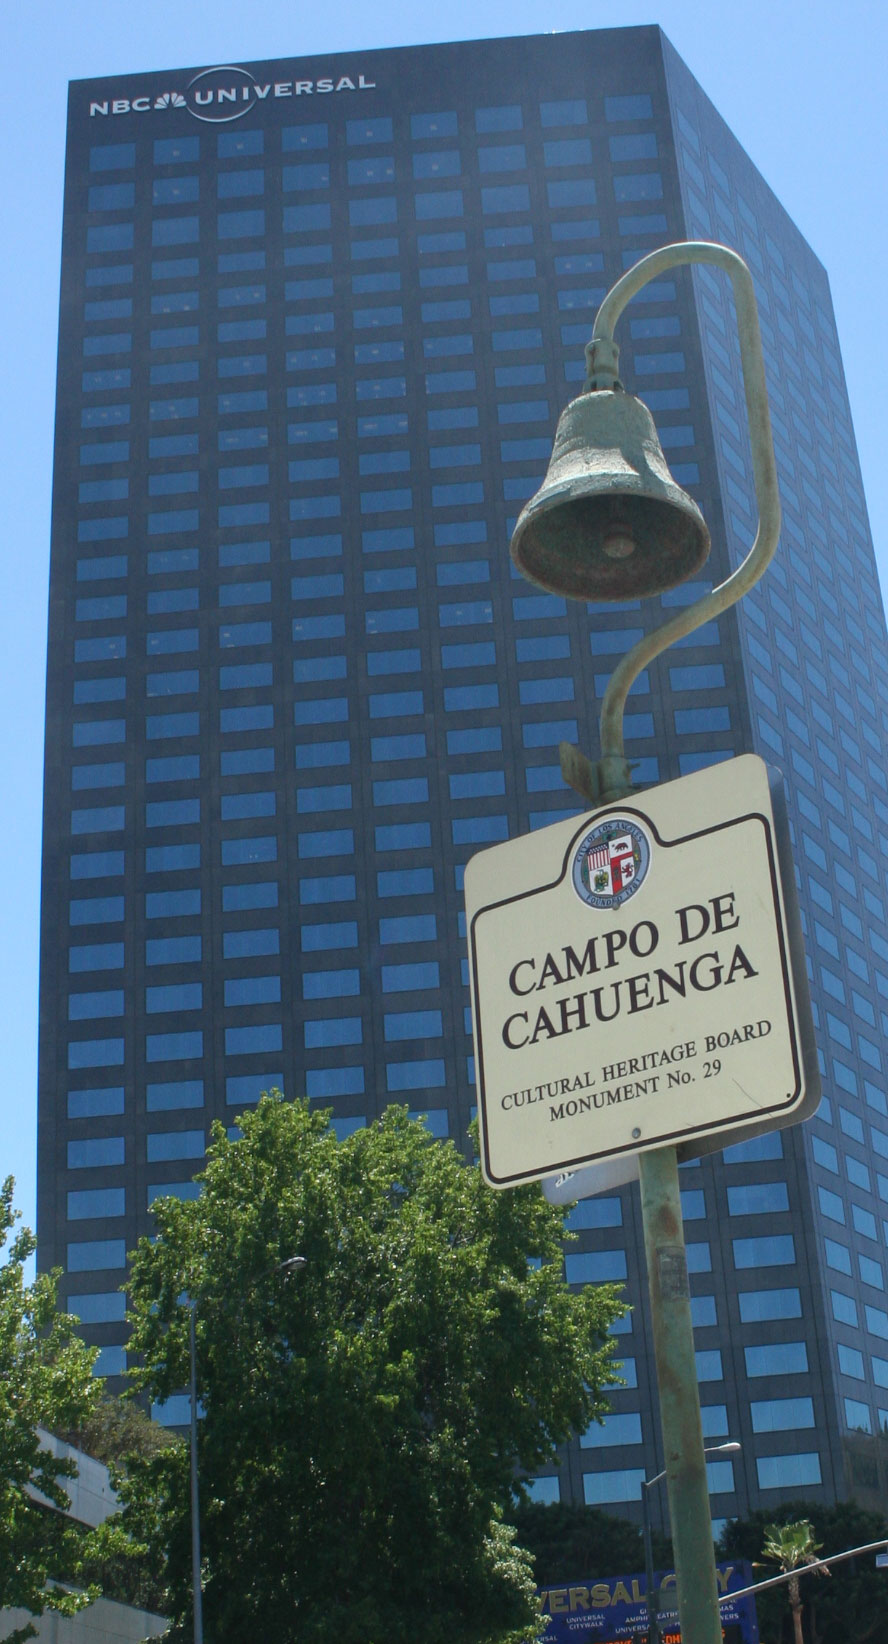 El Camino Real Bell in front of the Universal tower.